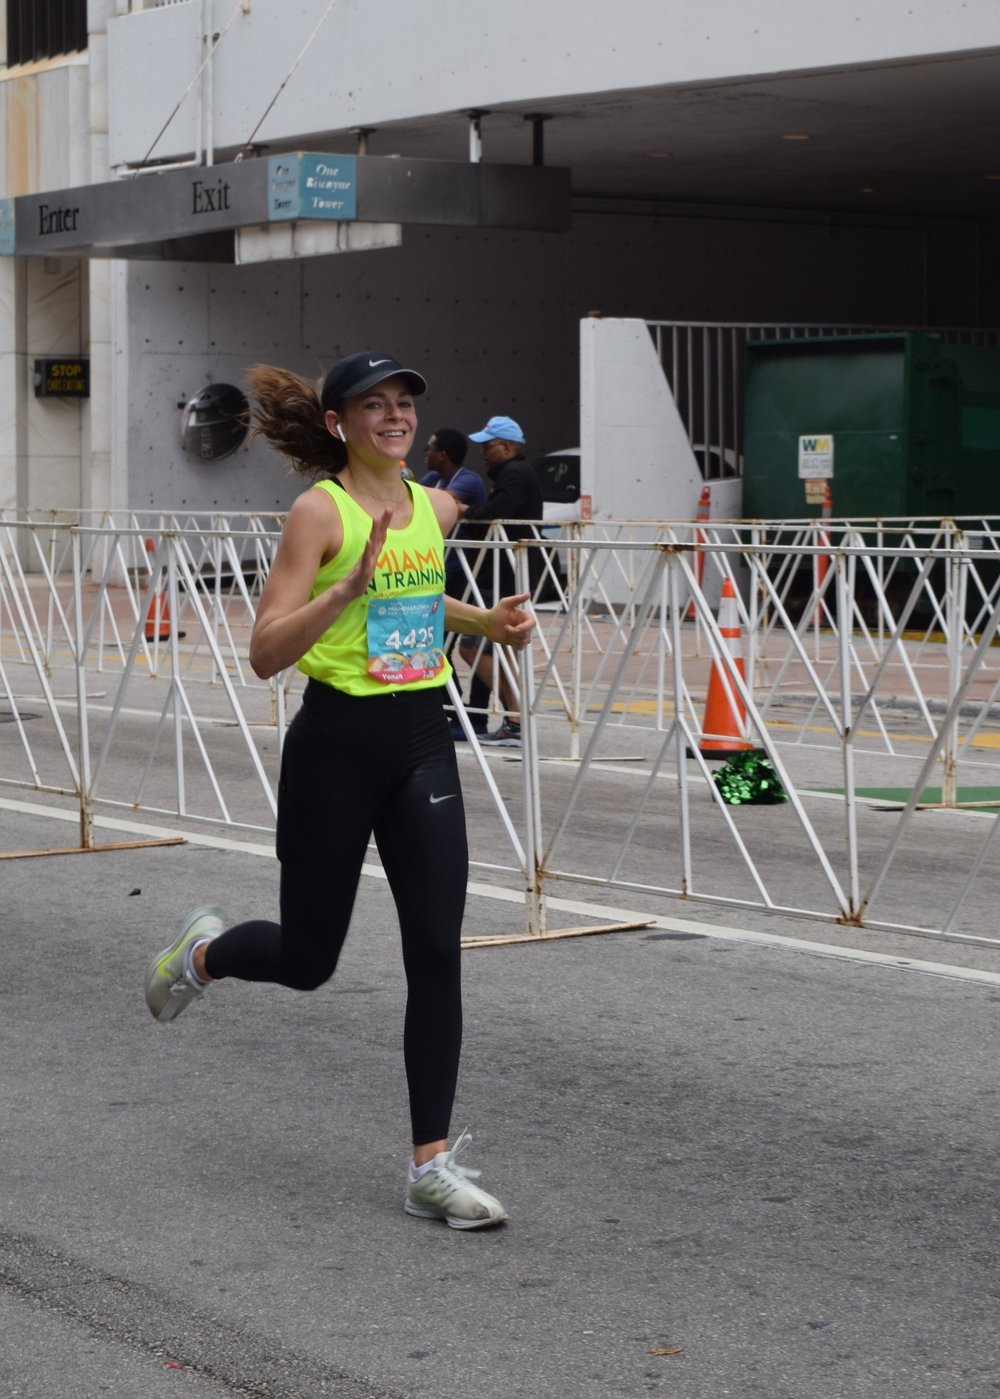 Elly about to cross the finish line at the 2019 Miami Marathon.